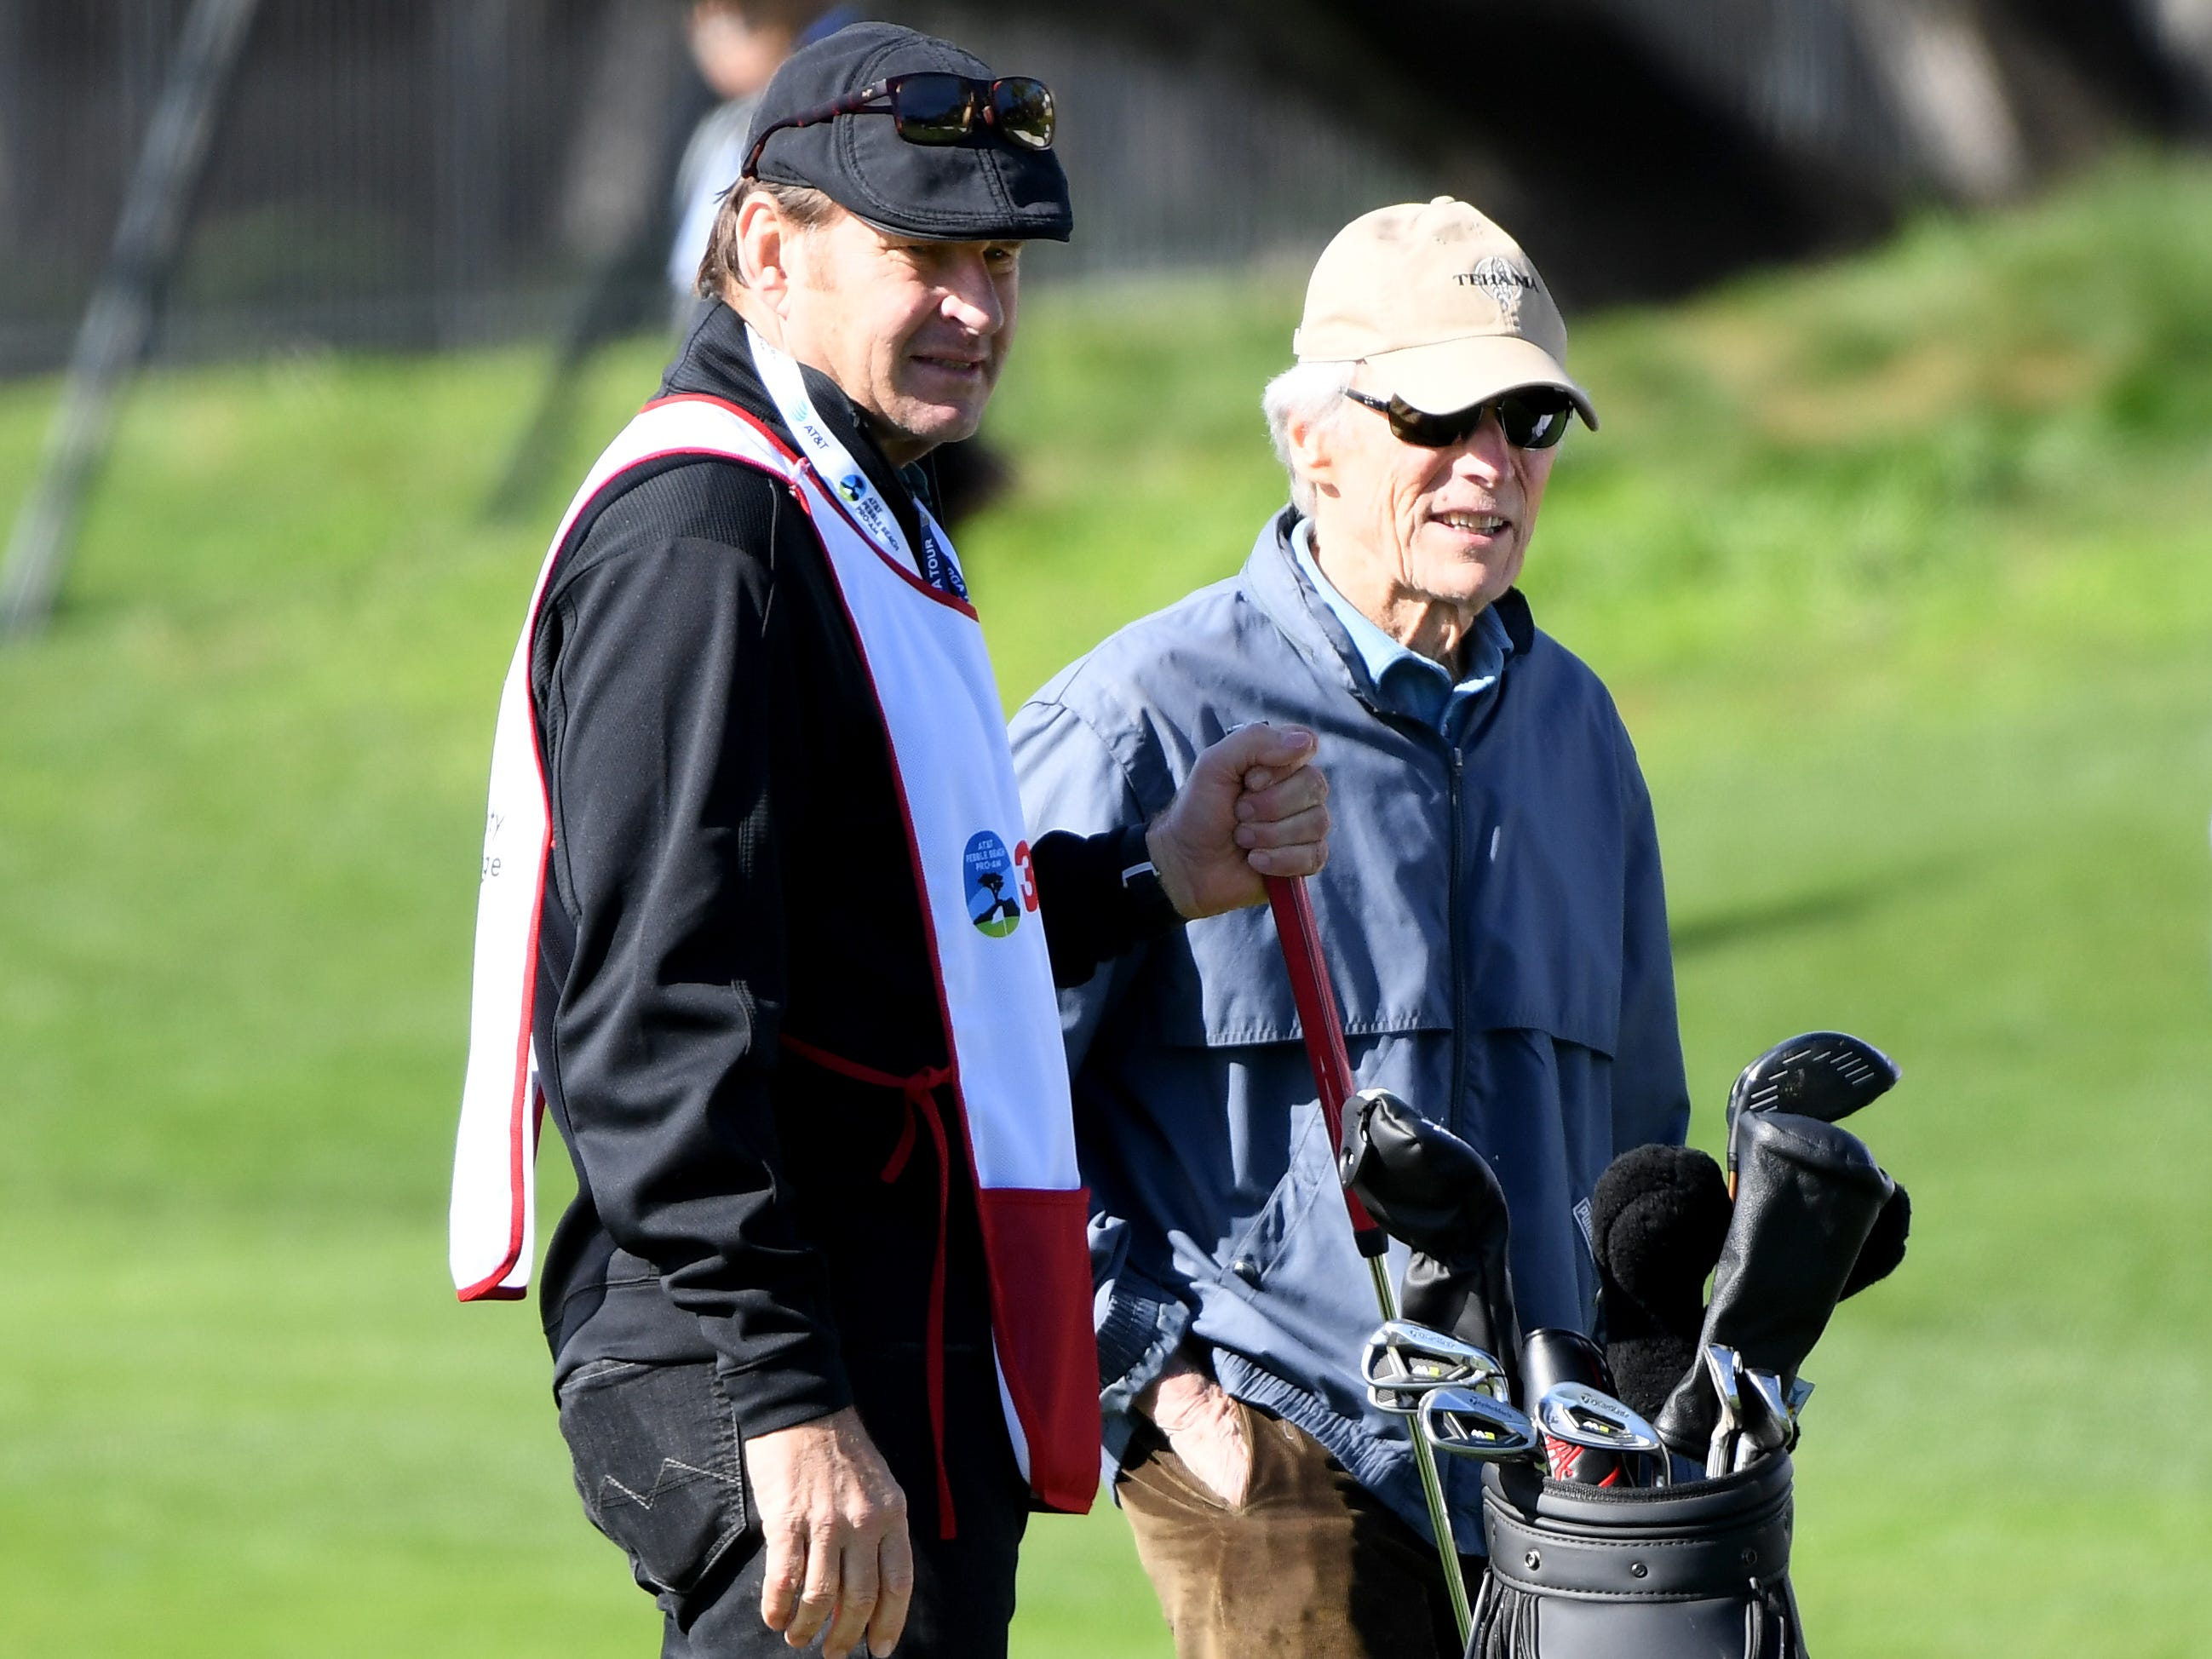 Sir Nick Faldo waits on the green with Clint Eastwood during the 3M Celebrity Challenge at the AT&T Pebble Beach Pro-Am.